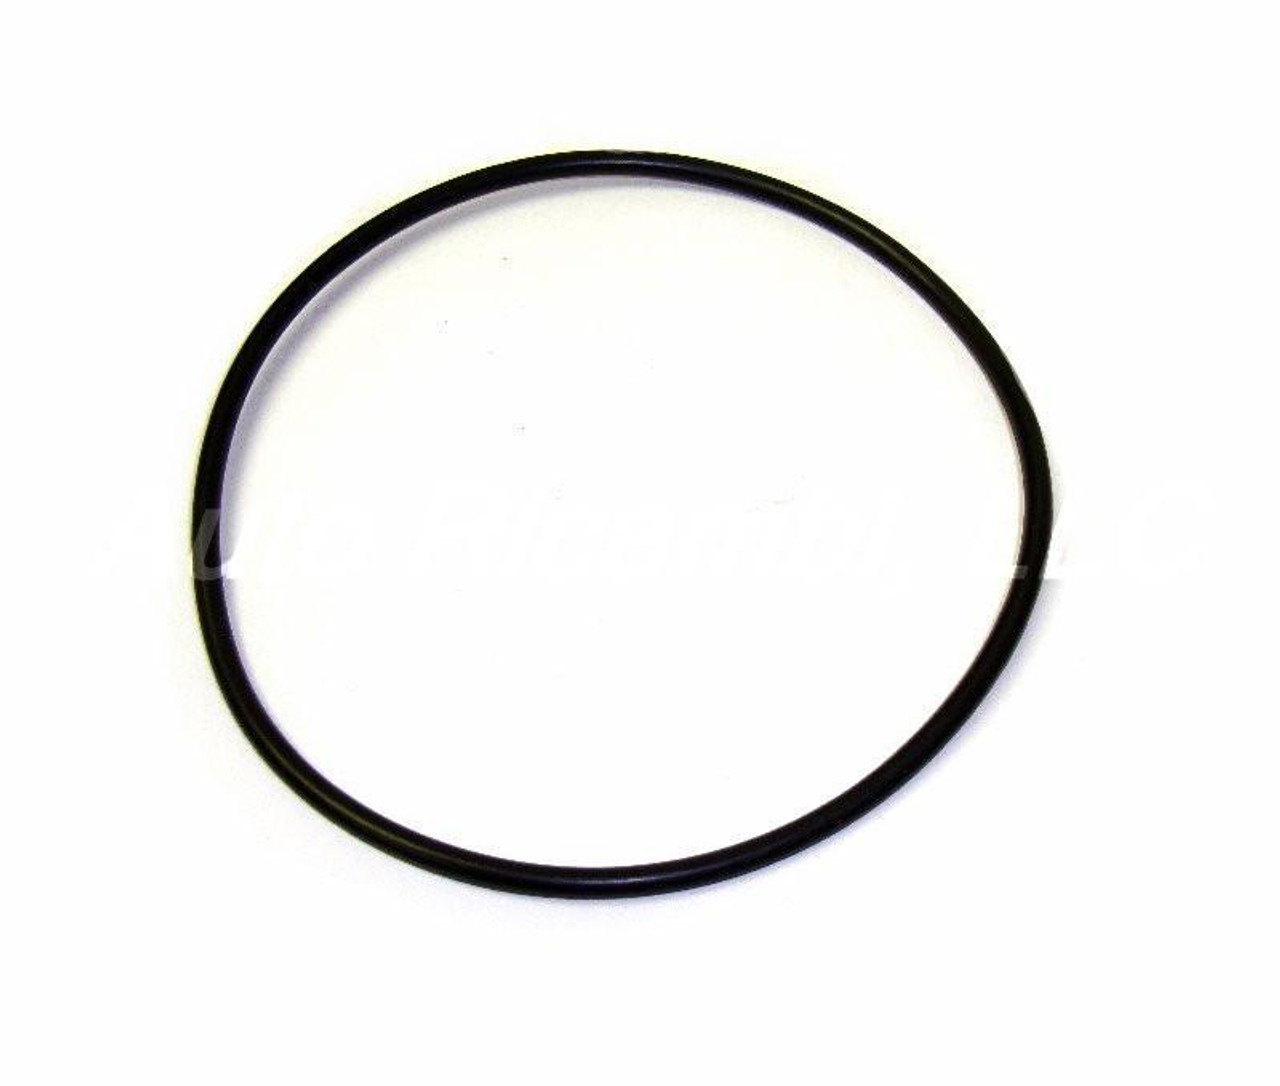 Centrifugal Oil Filter Cover O-Ring - 1438cc